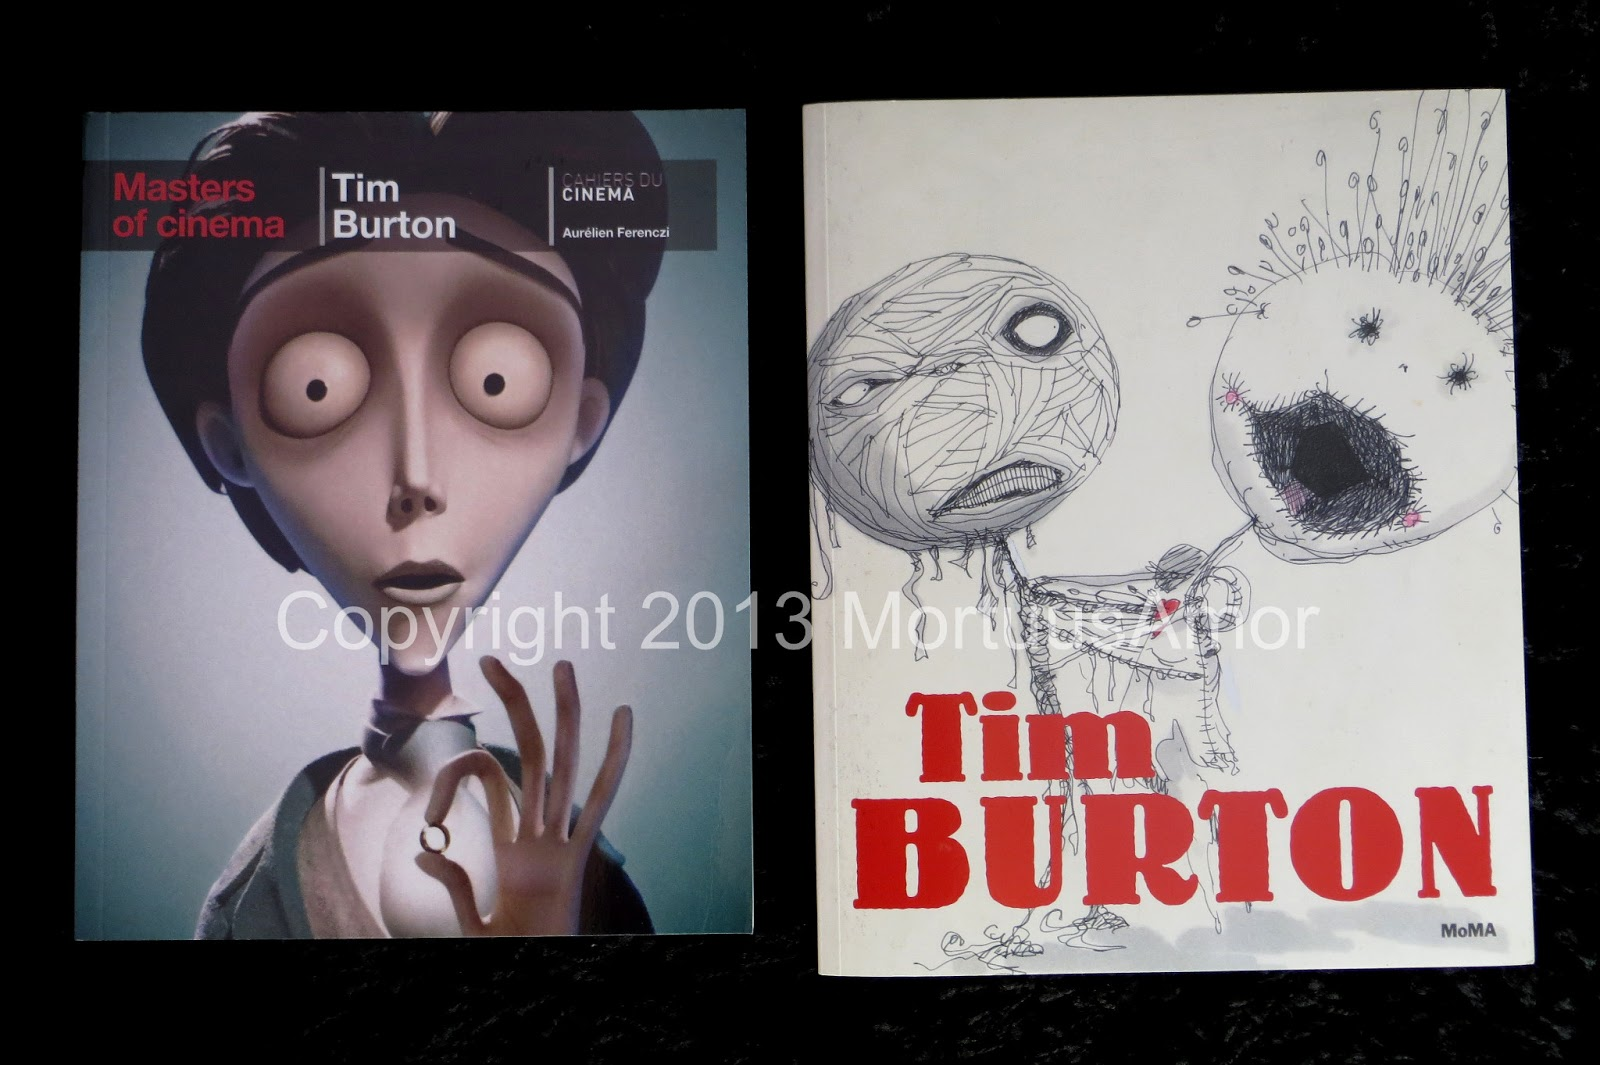 tim burton cinematic techniques The gothic elements in tim burtons movies film studies essay print reference this published: 23rd march, 2015 disclaimer: this essay has been submitted by a.